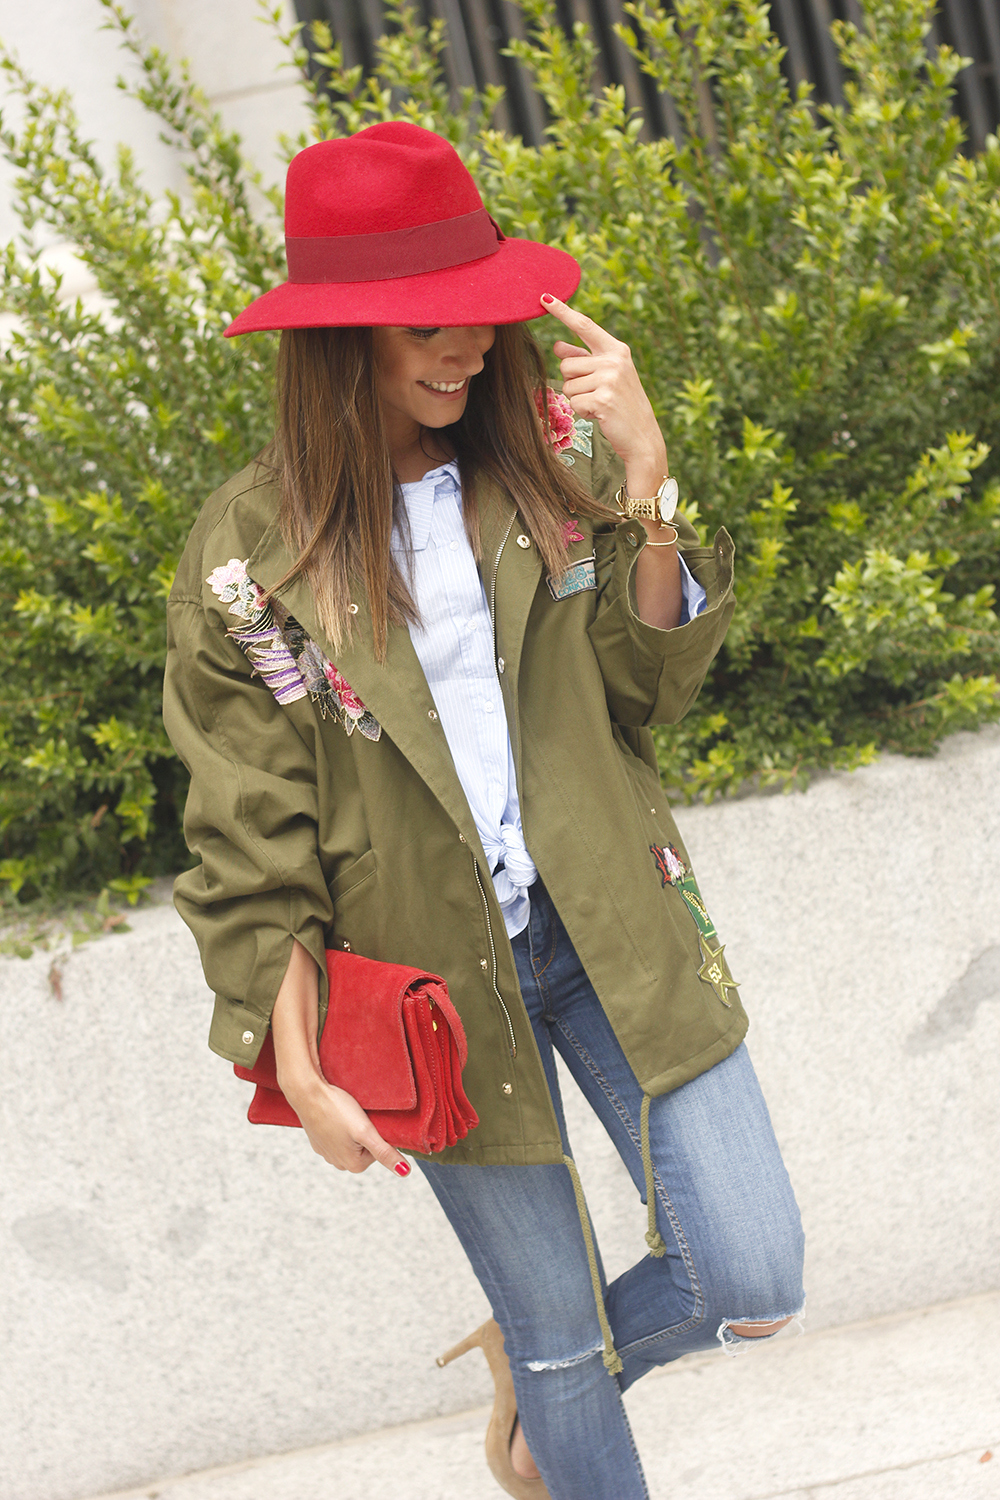 Green Parka Jeans nude heels red uterqüe hat style fashion04